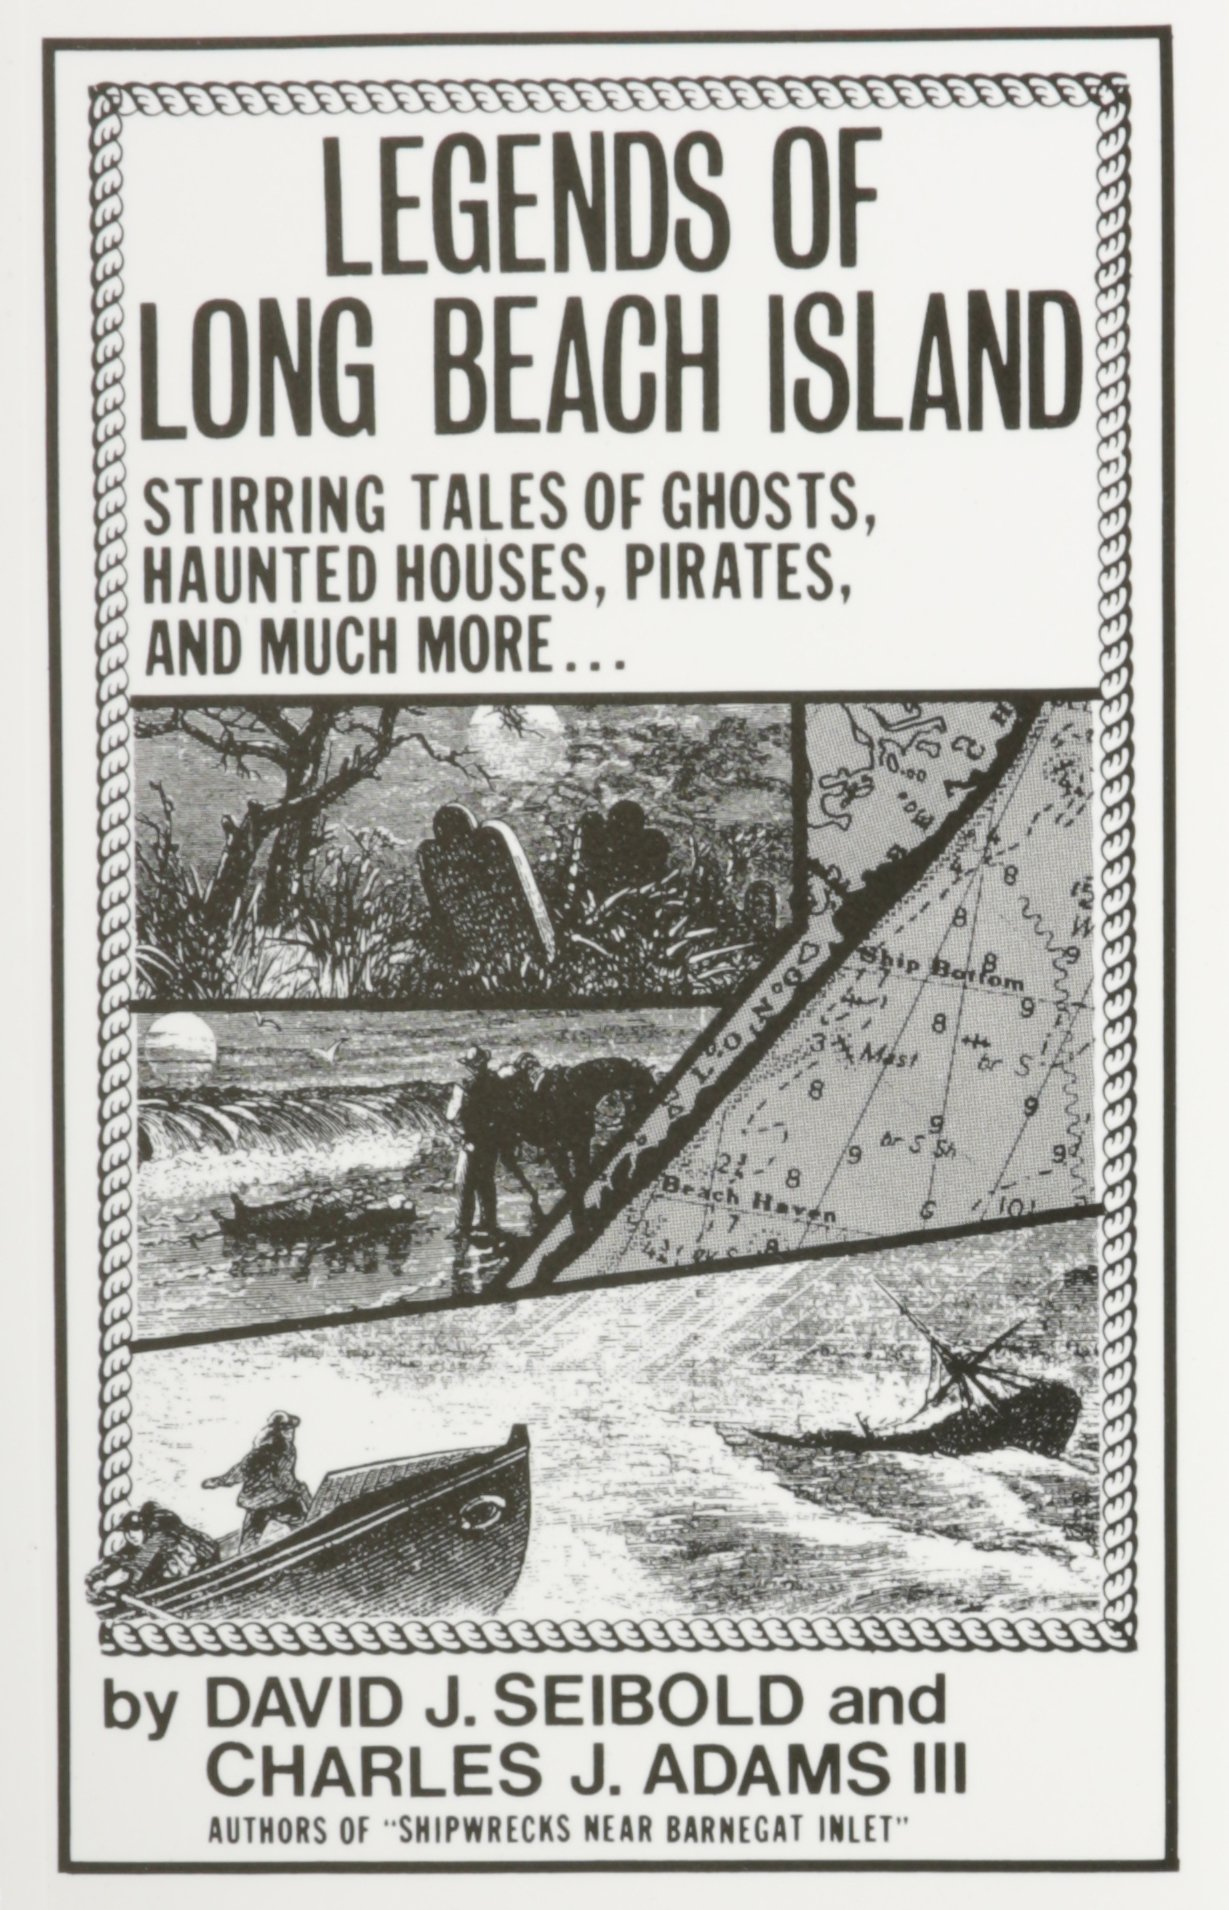 Image result for images of legends of long beach island